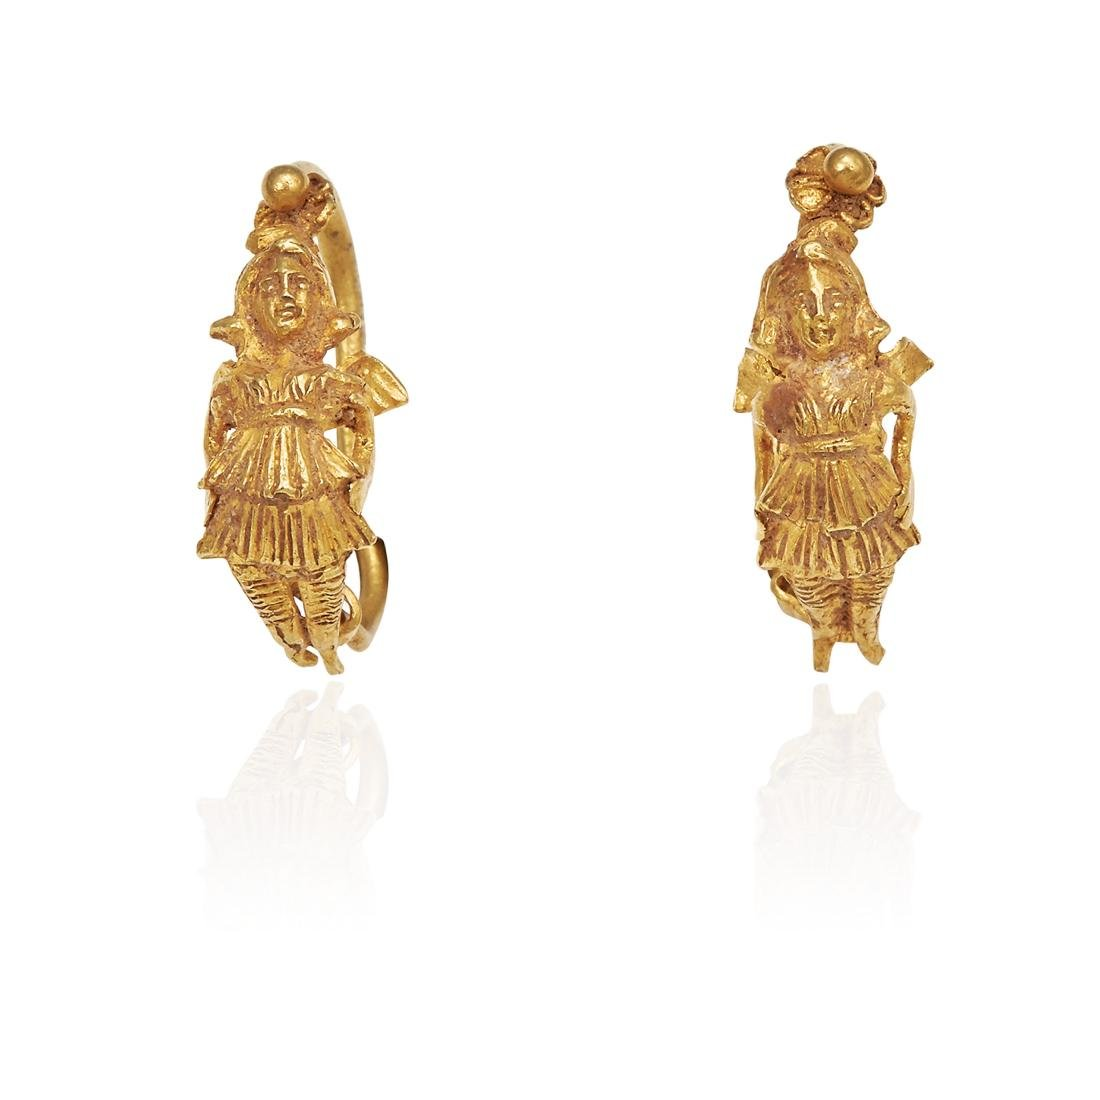 A PAIR OF ANCIENT ROMAN EARRINGS in high carat yellow